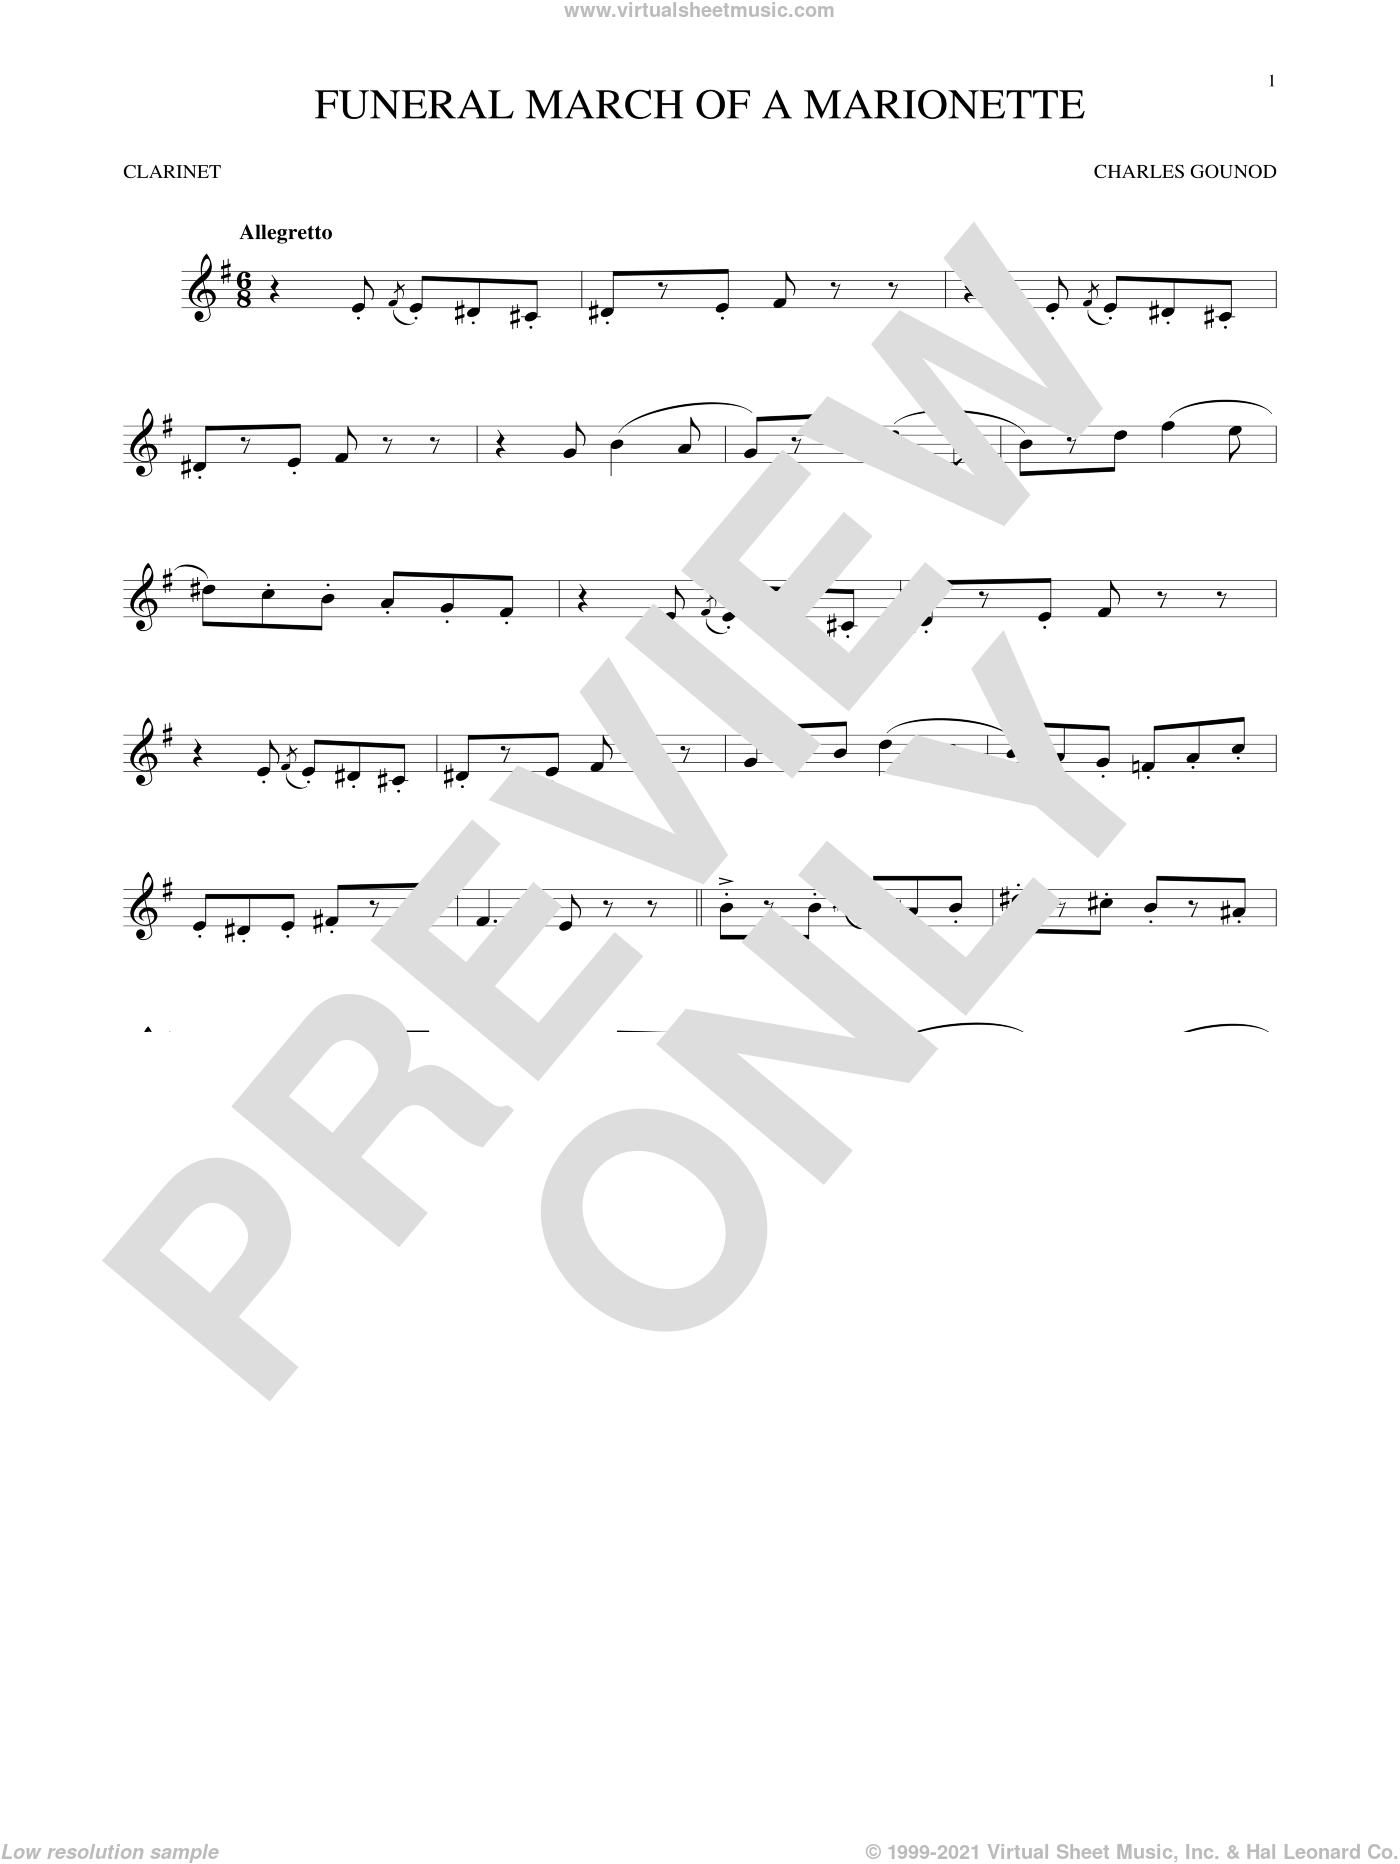 Funeral March Of A Marionette sheet music for clarinet solo by Charles Gounod, classical score, intermediate skill level